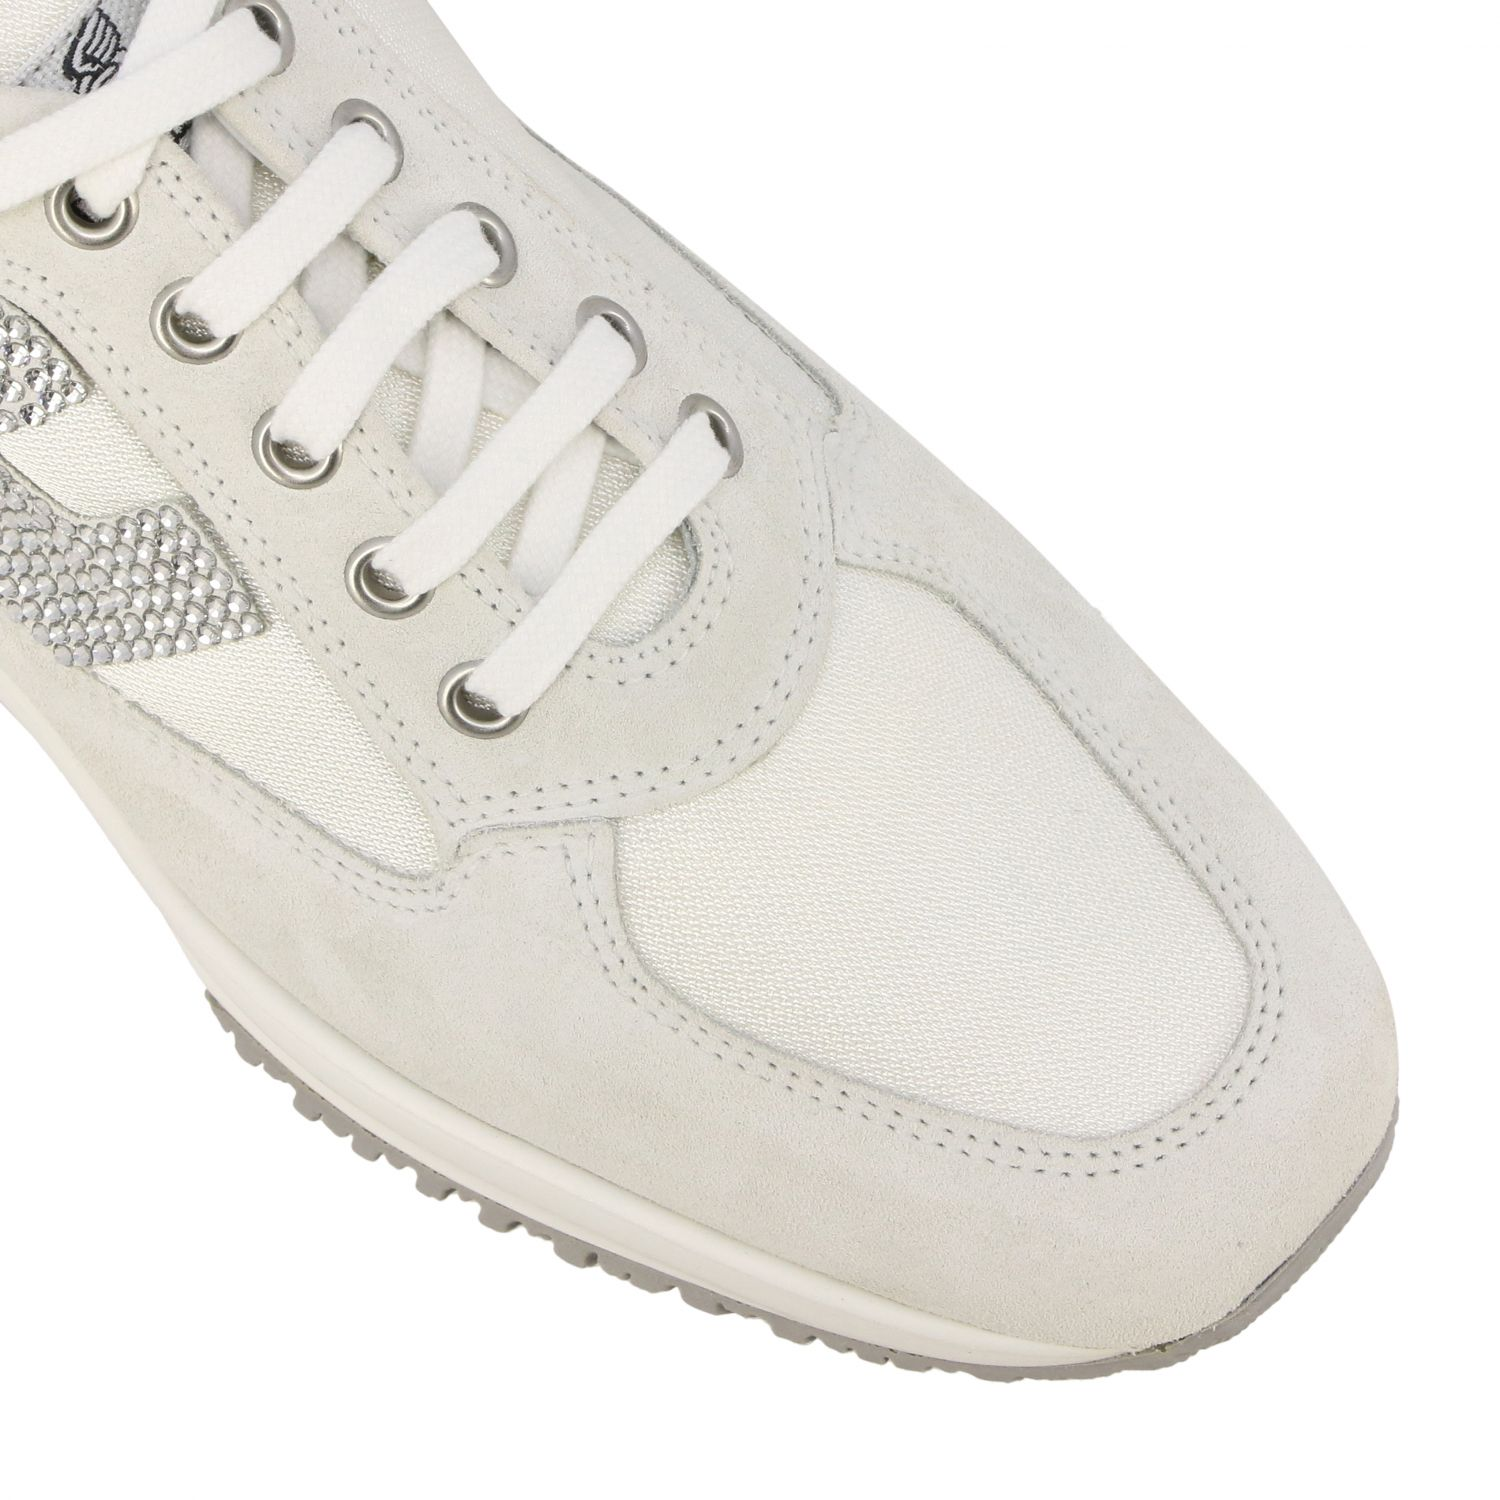 Shoes women Hogan white 4